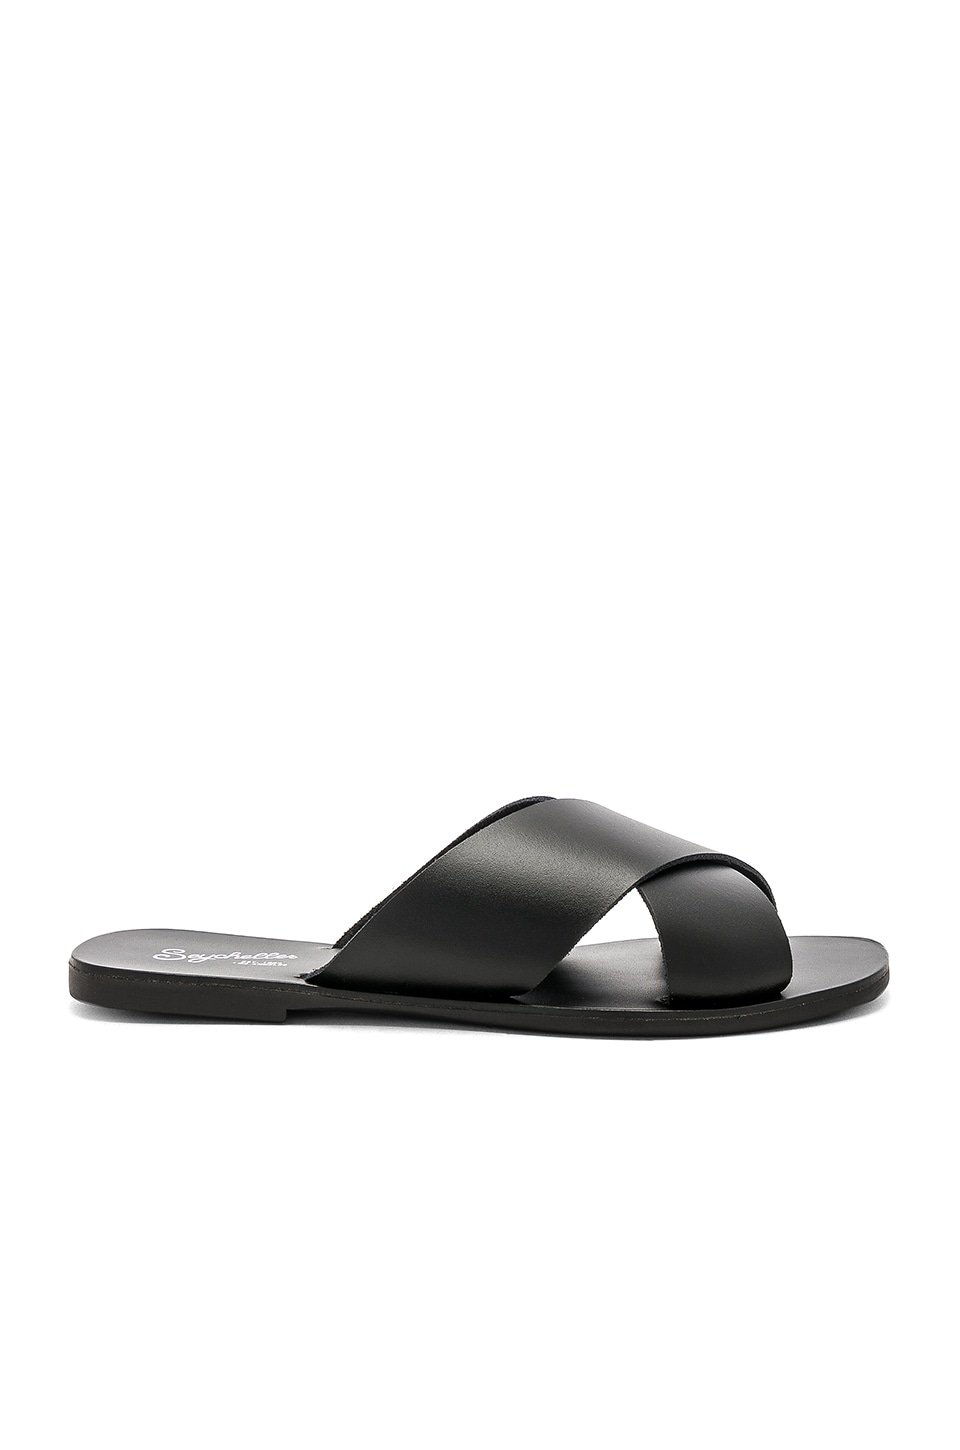 Seychelles Total Relaxation Sandals in Black